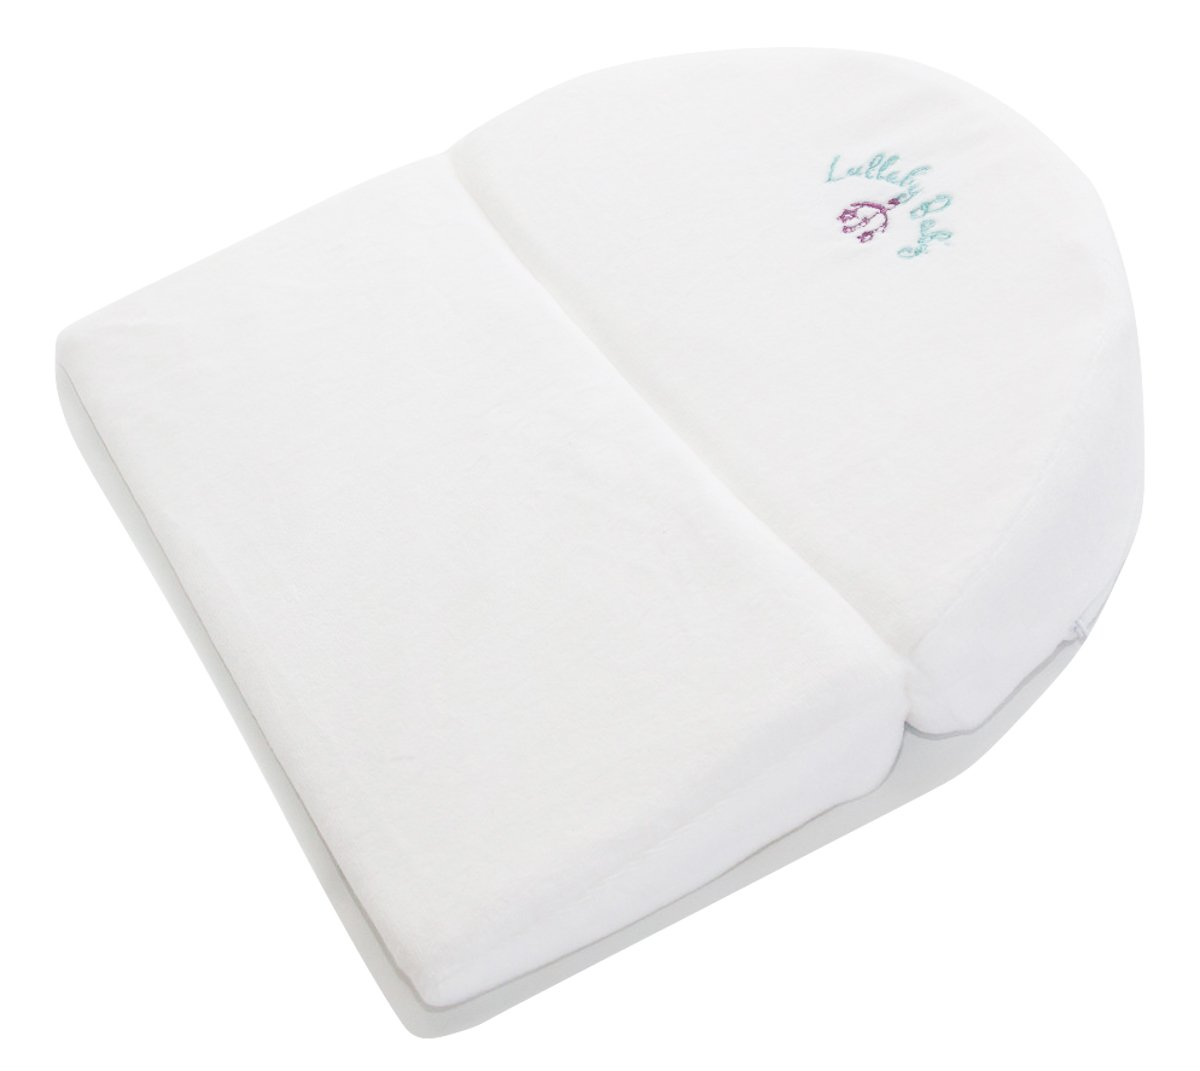 Lullaby Baby Foldable Memory Foam Infant Newborn Acid Reflux Wedge Bassinet CPSC Lab Approved Waterproof Universal Size 12 Degree Incline Sleeper with Bonus Washable Cover